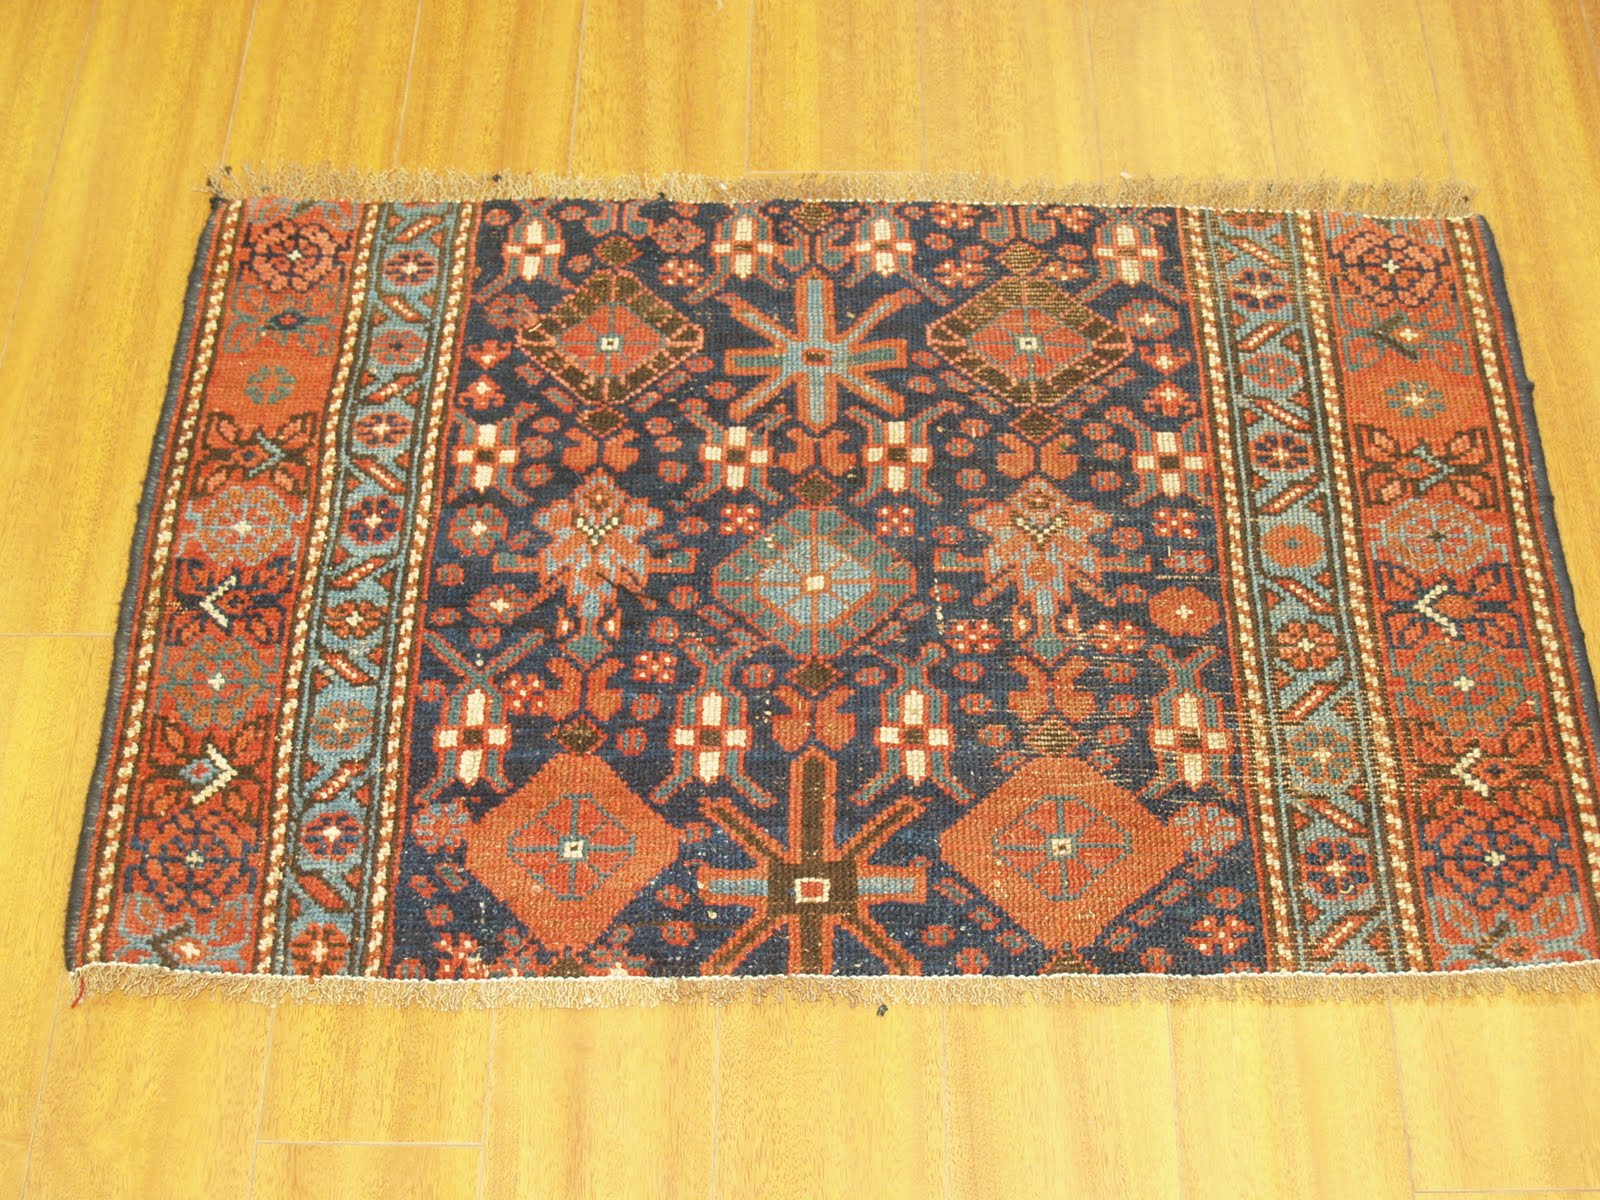 A Customer Brought In Very Old And Antique Hand Knotted Persian Hamadan Runner Wanted Us To Cut It Shorten The Length Of This Beautiful